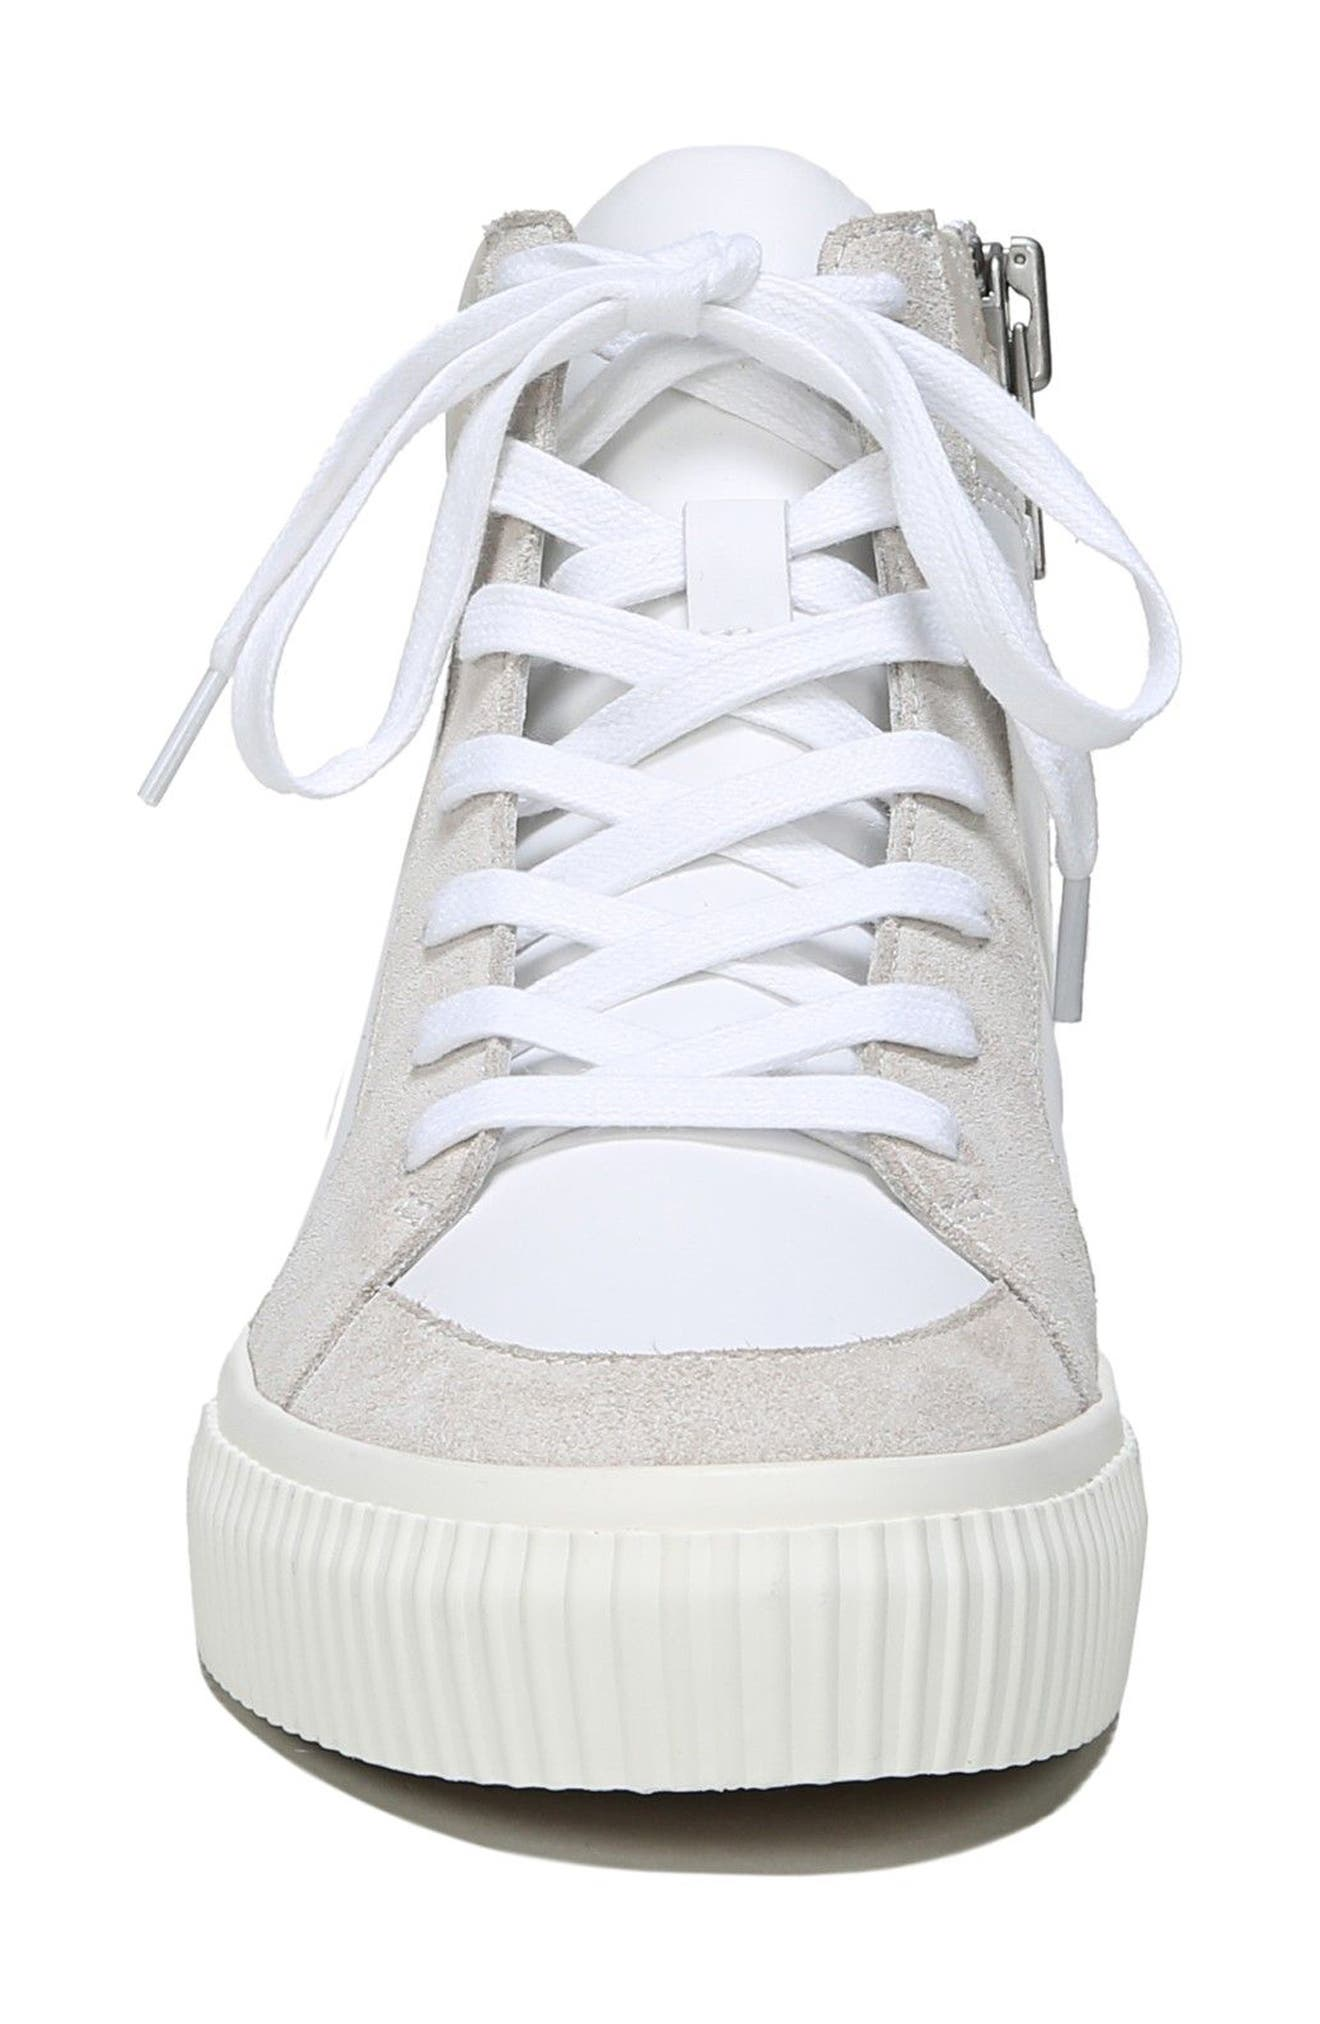 Kiles High-Top Sneaker,                             Alternate thumbnail 4, color,                             Horchata